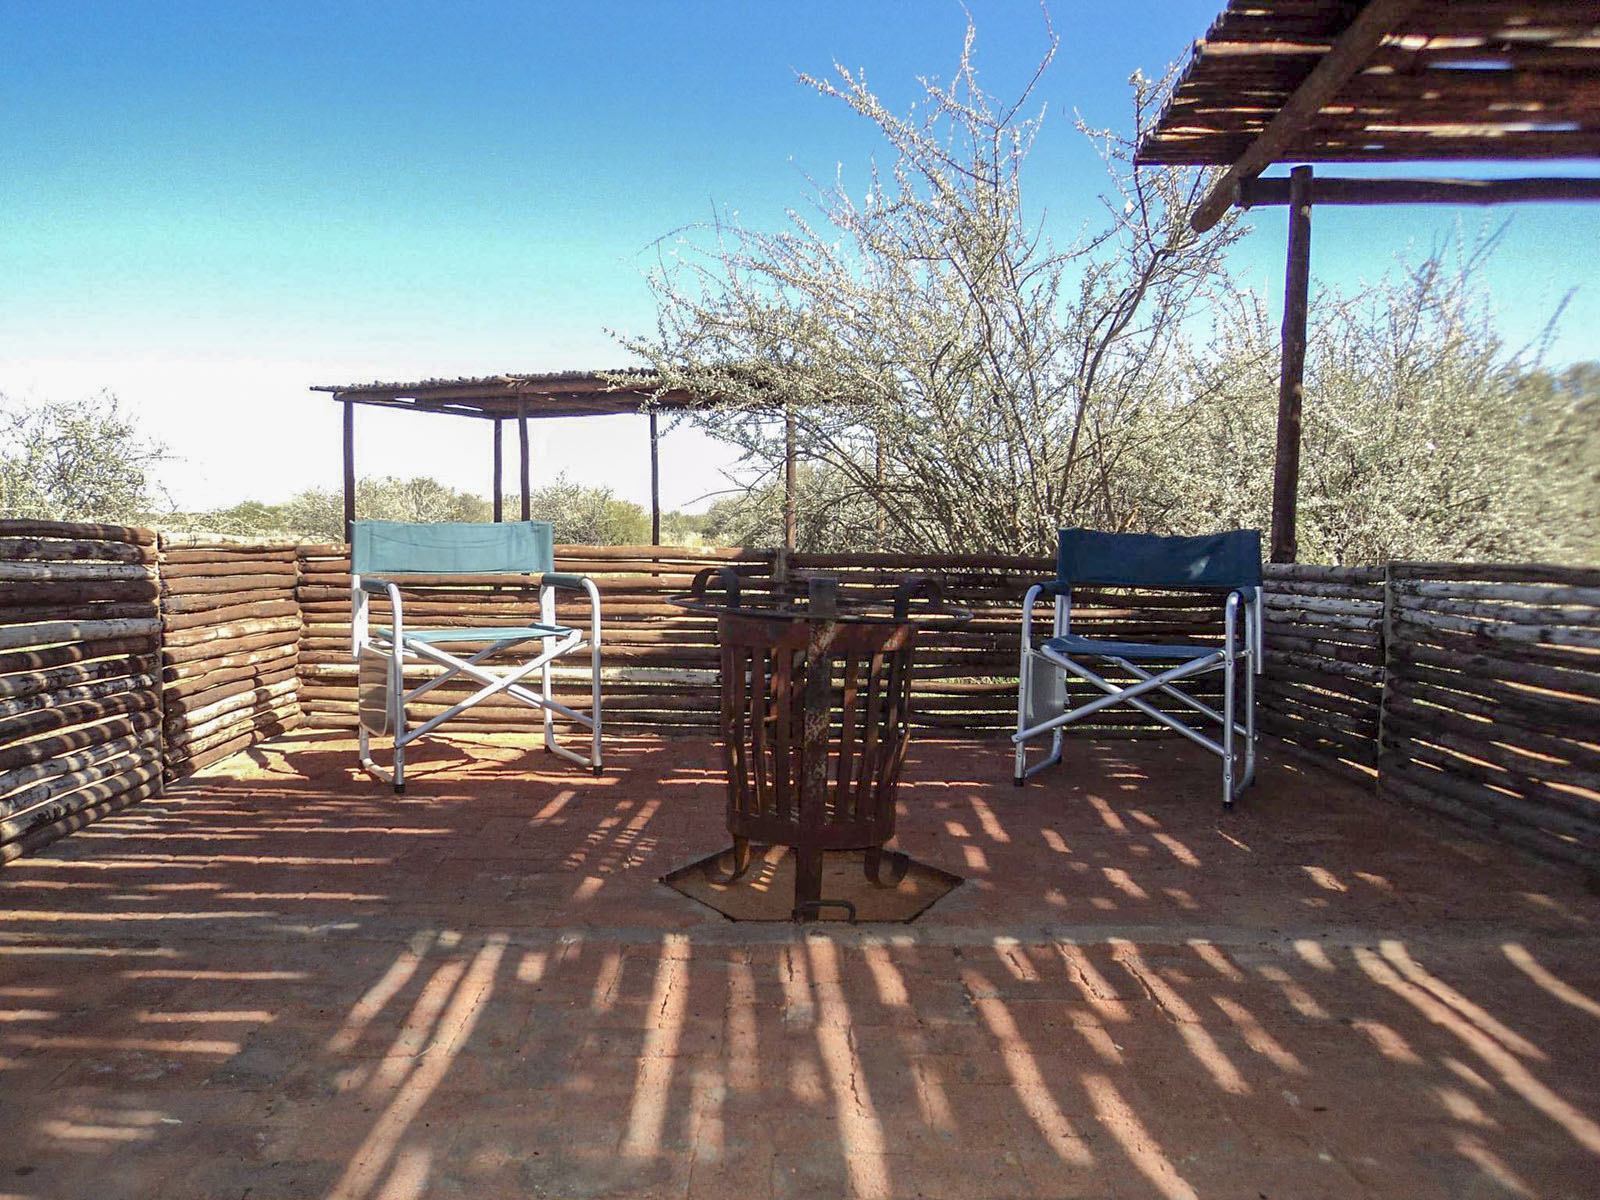 Camp area and Braai